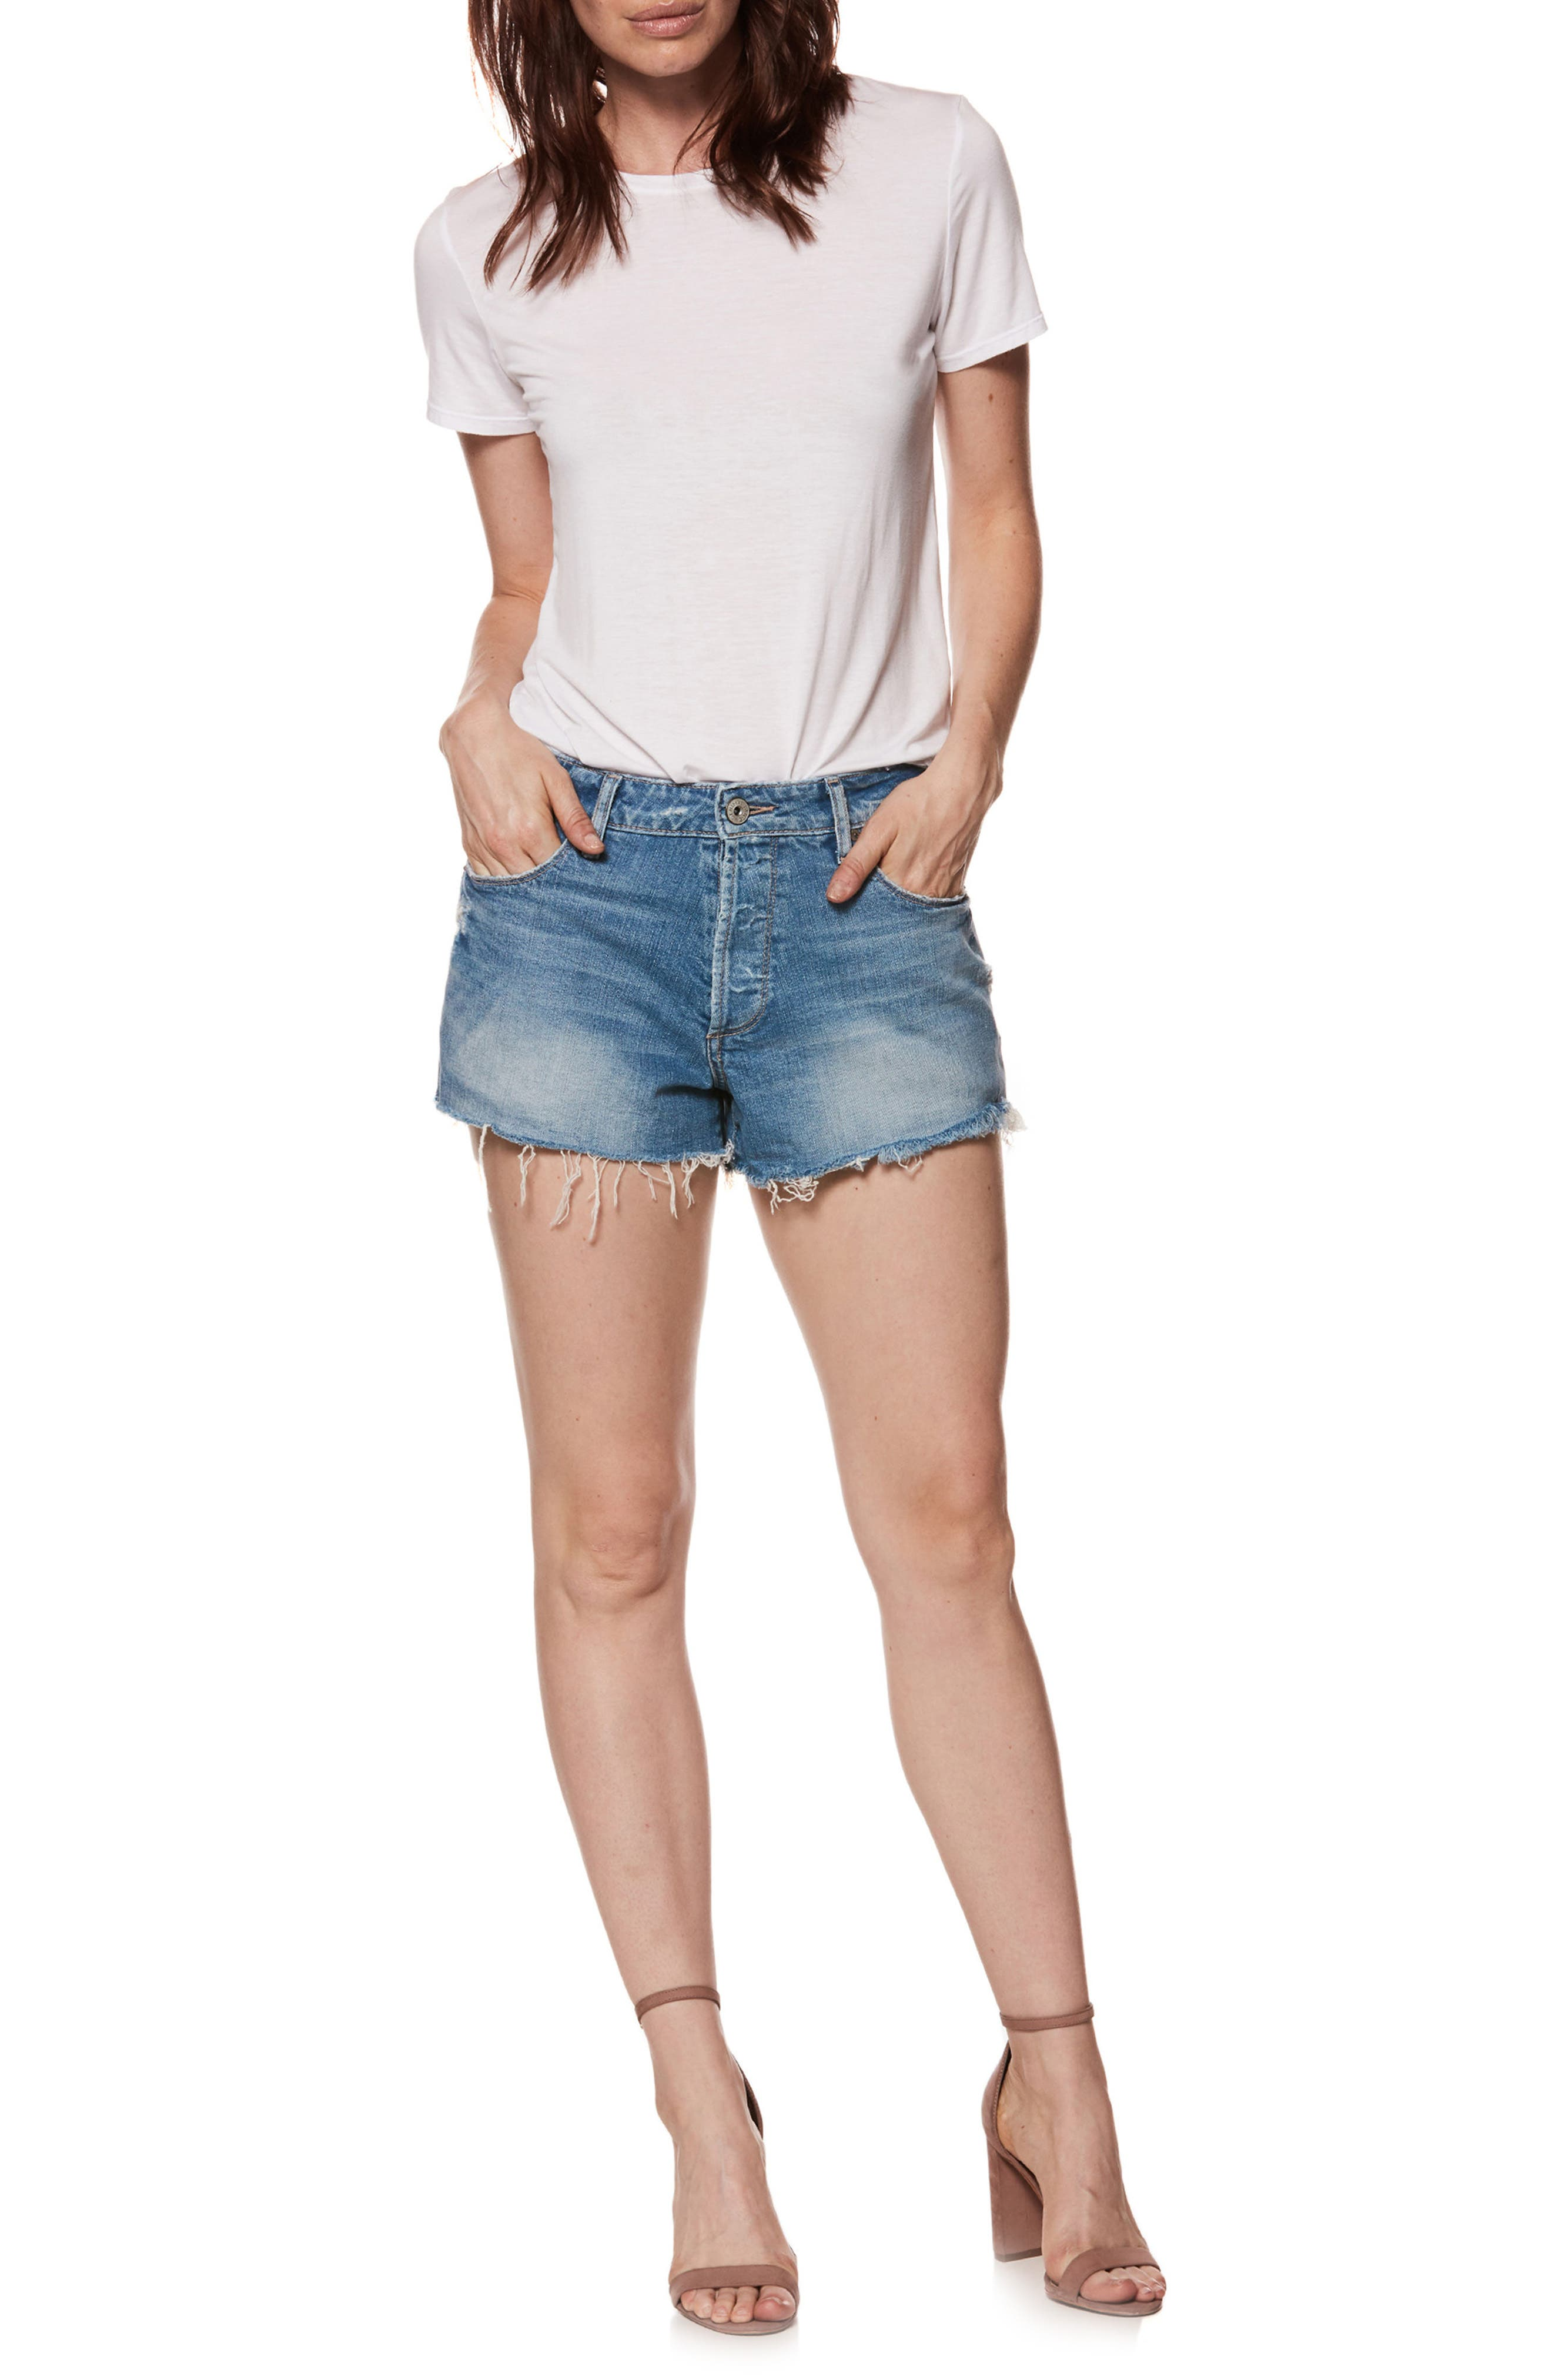 Emmitt High Waist Cutoff Denim Shorts,                             Alternate thumbnail 8, color,                             JANIS DESTRUCTED